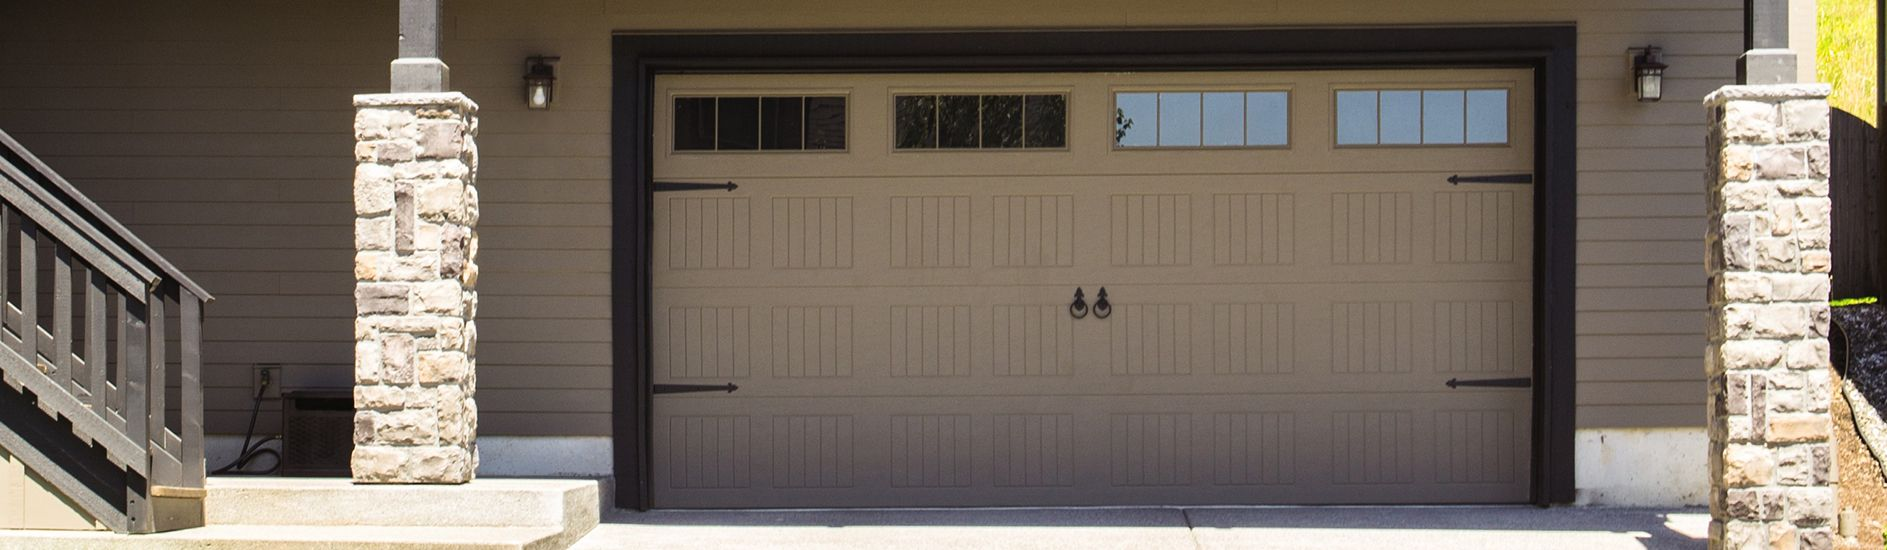 9100 9600 Steel Garage Door Sonoma Taupe Stockbridge Wayne Dalton Garage Doors Garage Doors Door Glass Inserts